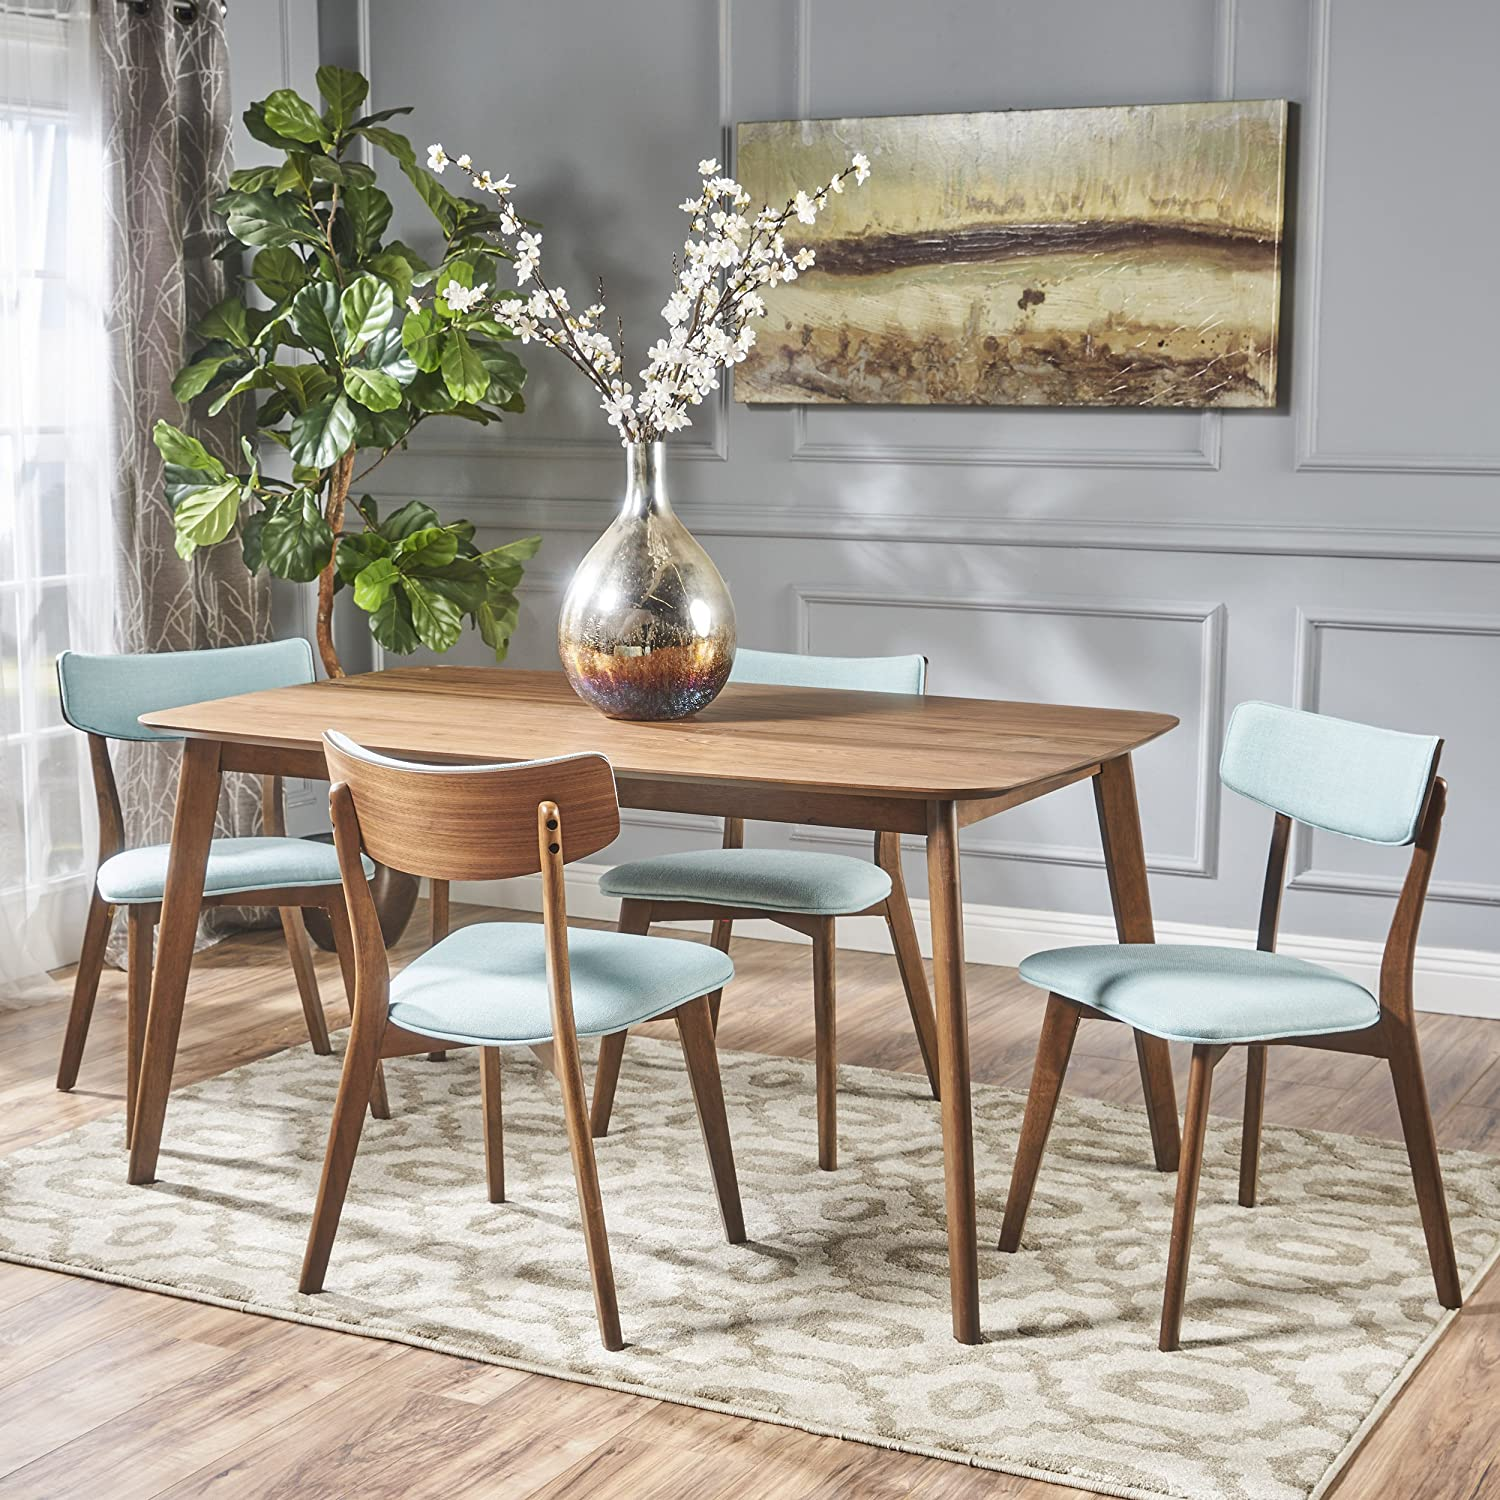 Aman Mid Century Natural Walnut Finished 5 Piece Wood Dining Set with Mint Fabric Chairs